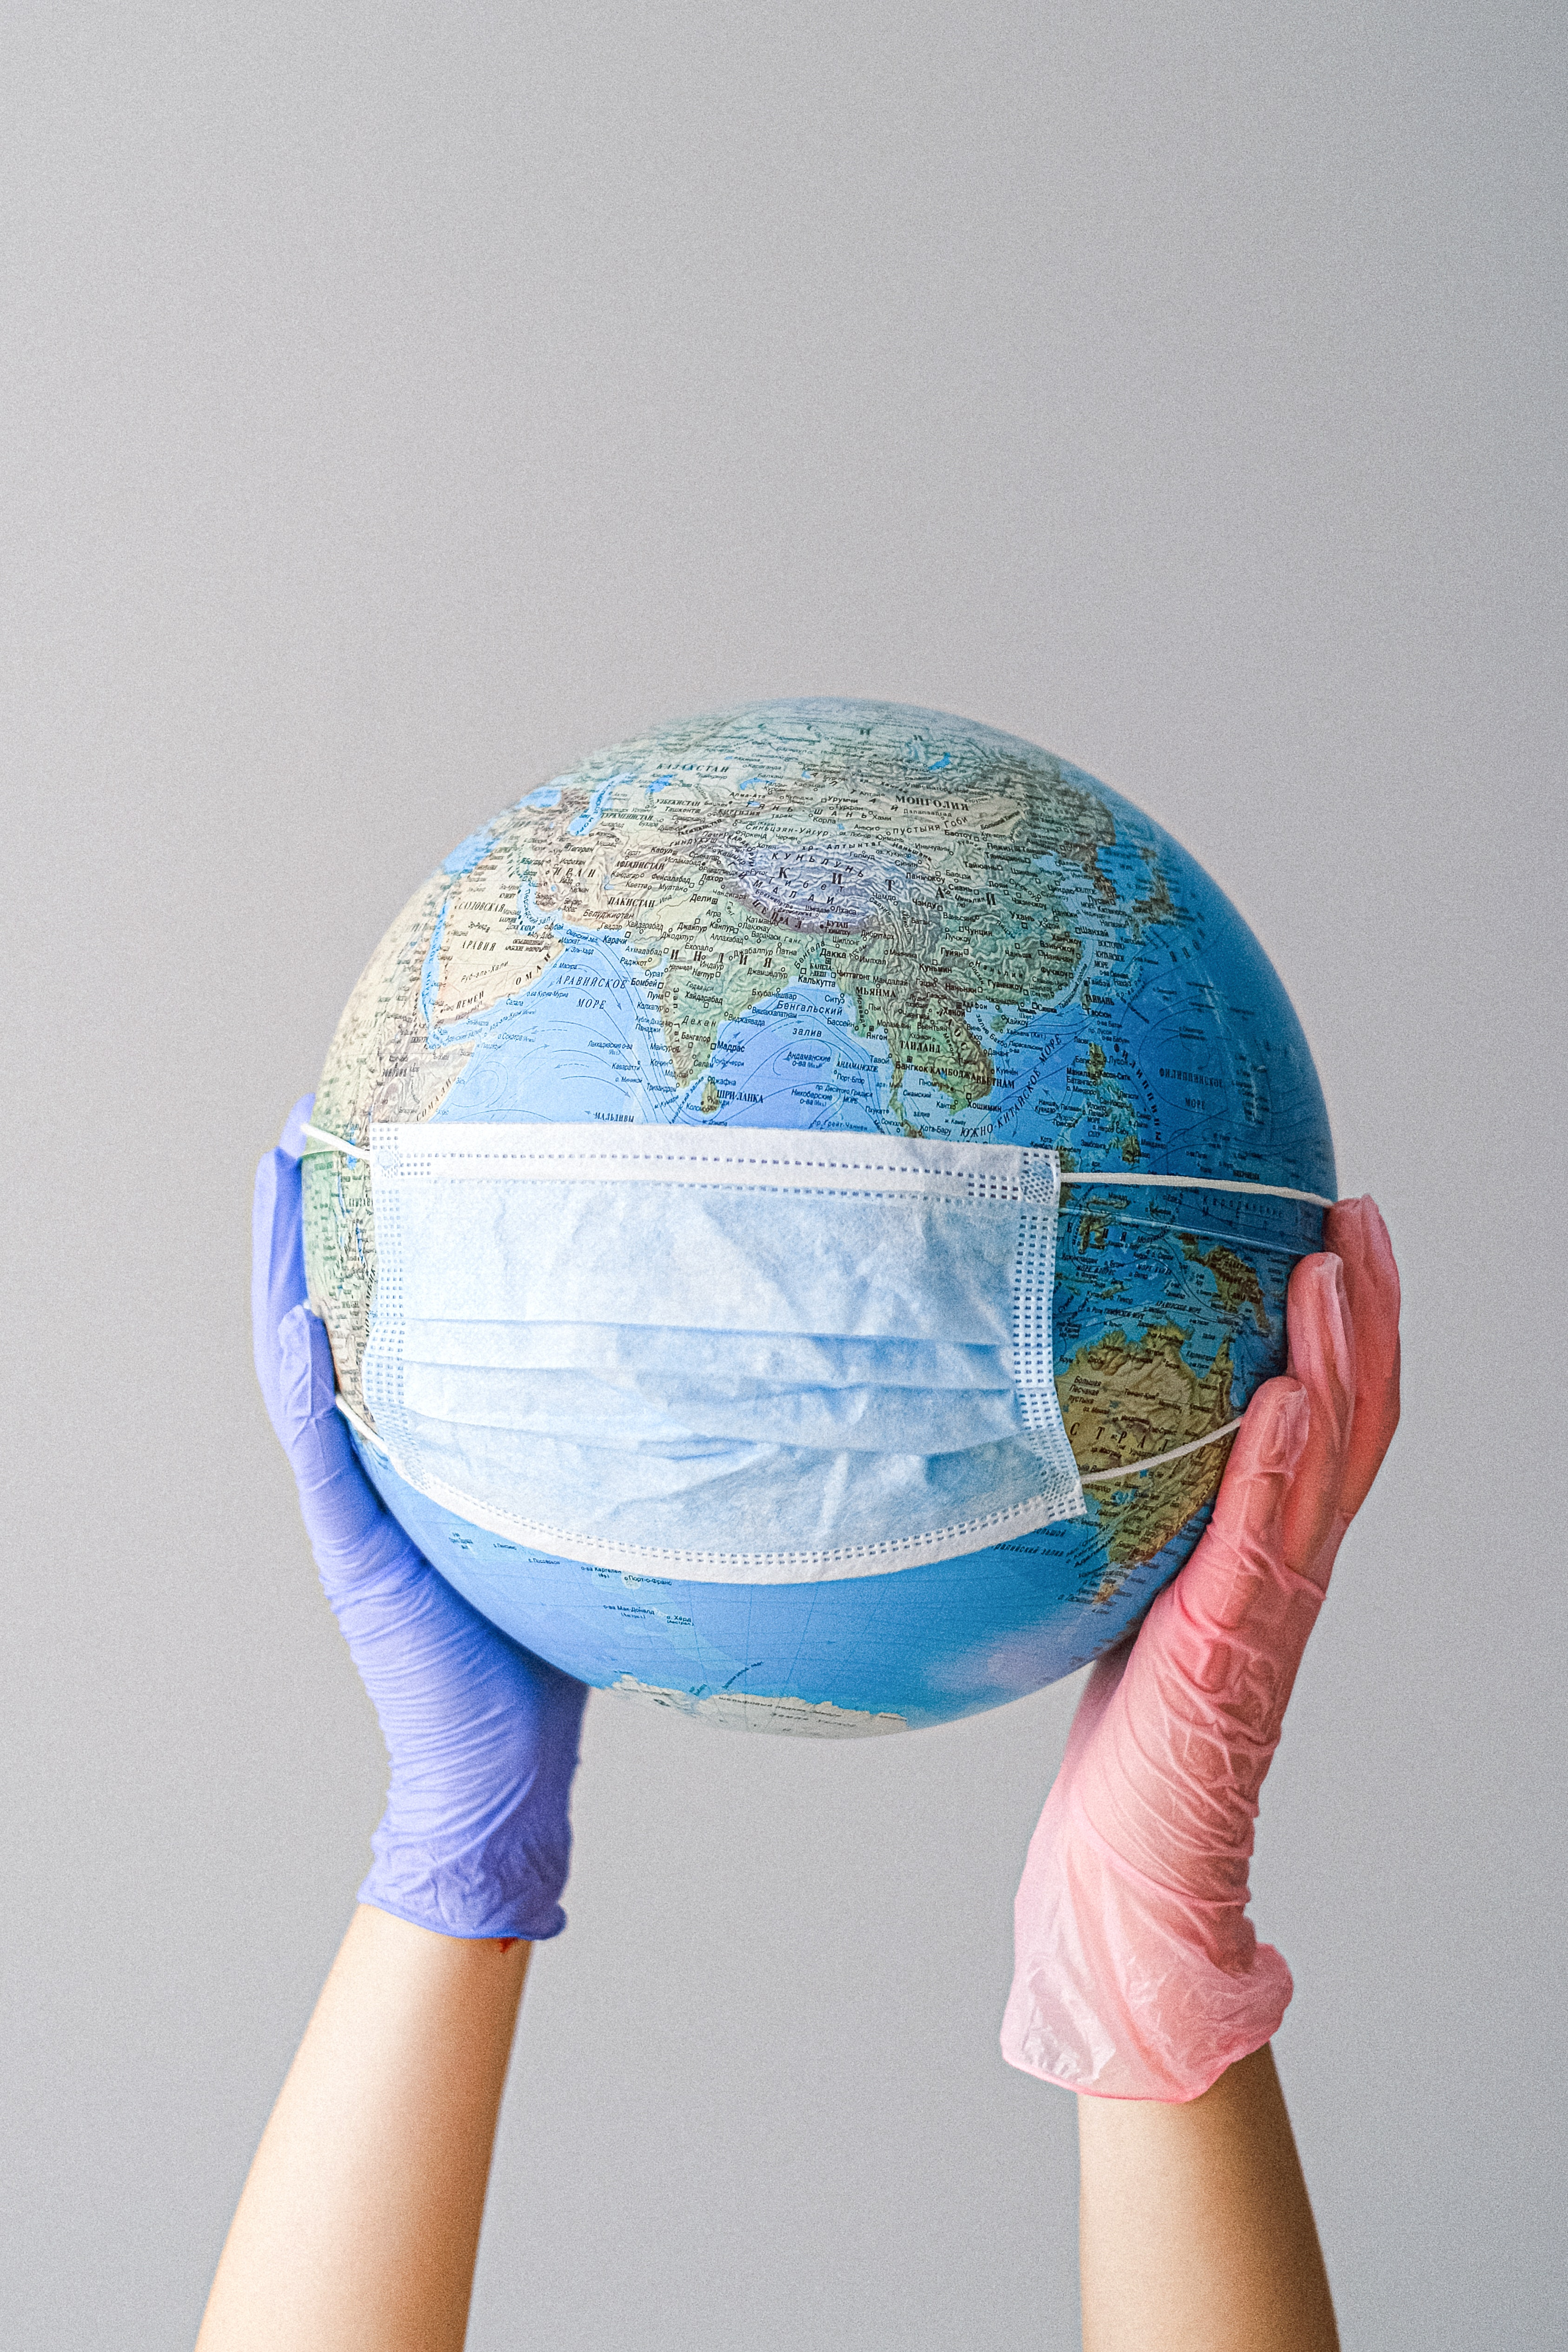 Hands with Latex gloves holding globe with mask